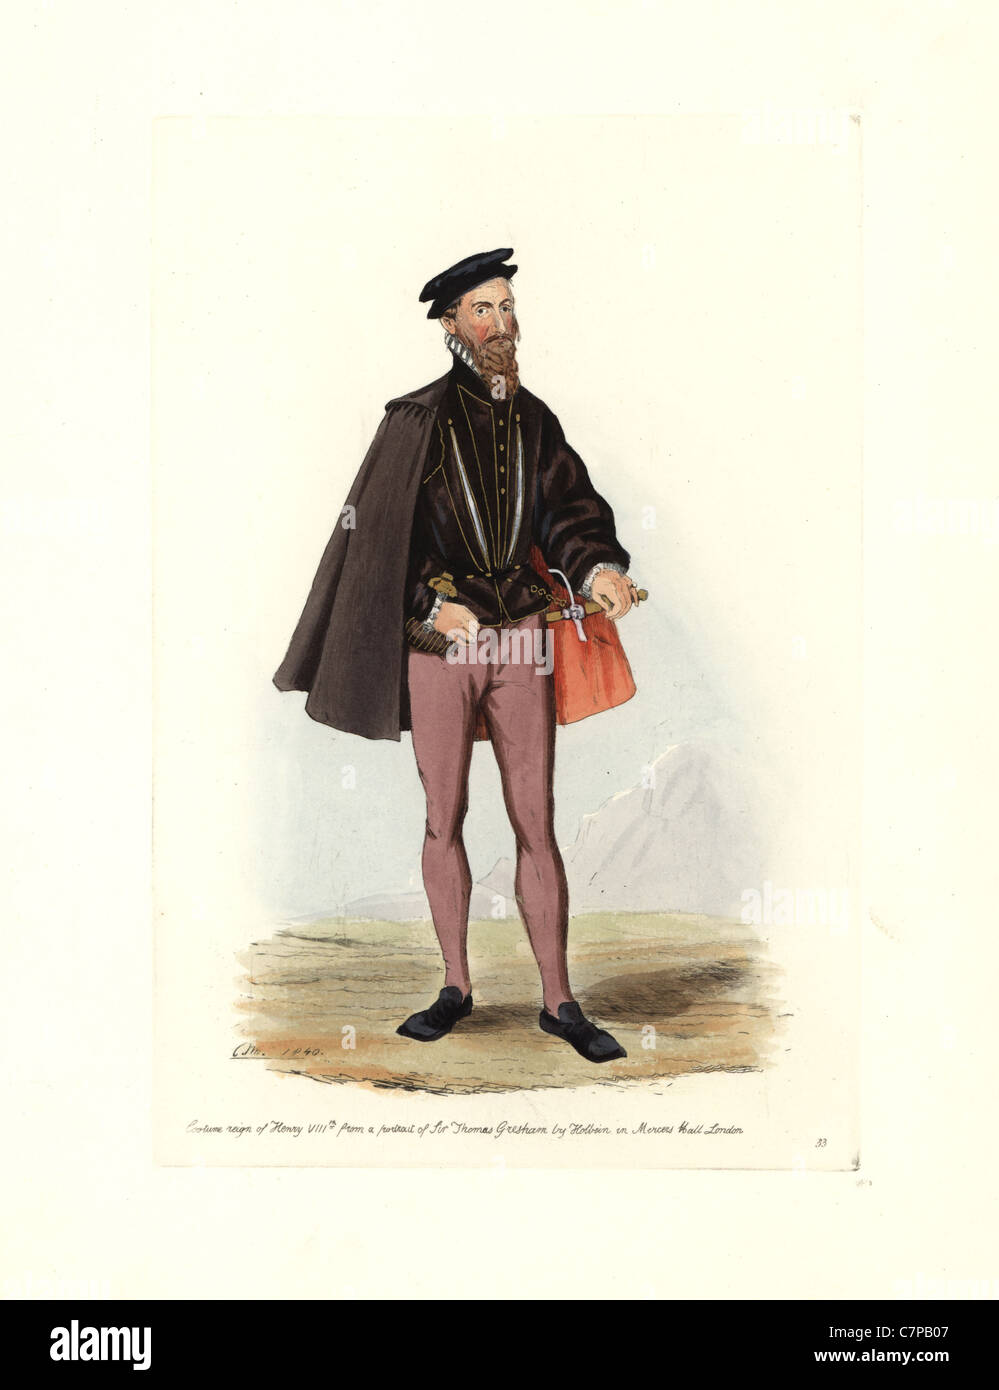 Male costume of the reign of Henry VIII, from a portrait of Sir Thomas Gresham by Holbein in Mercers Hall, London. - Stock Image